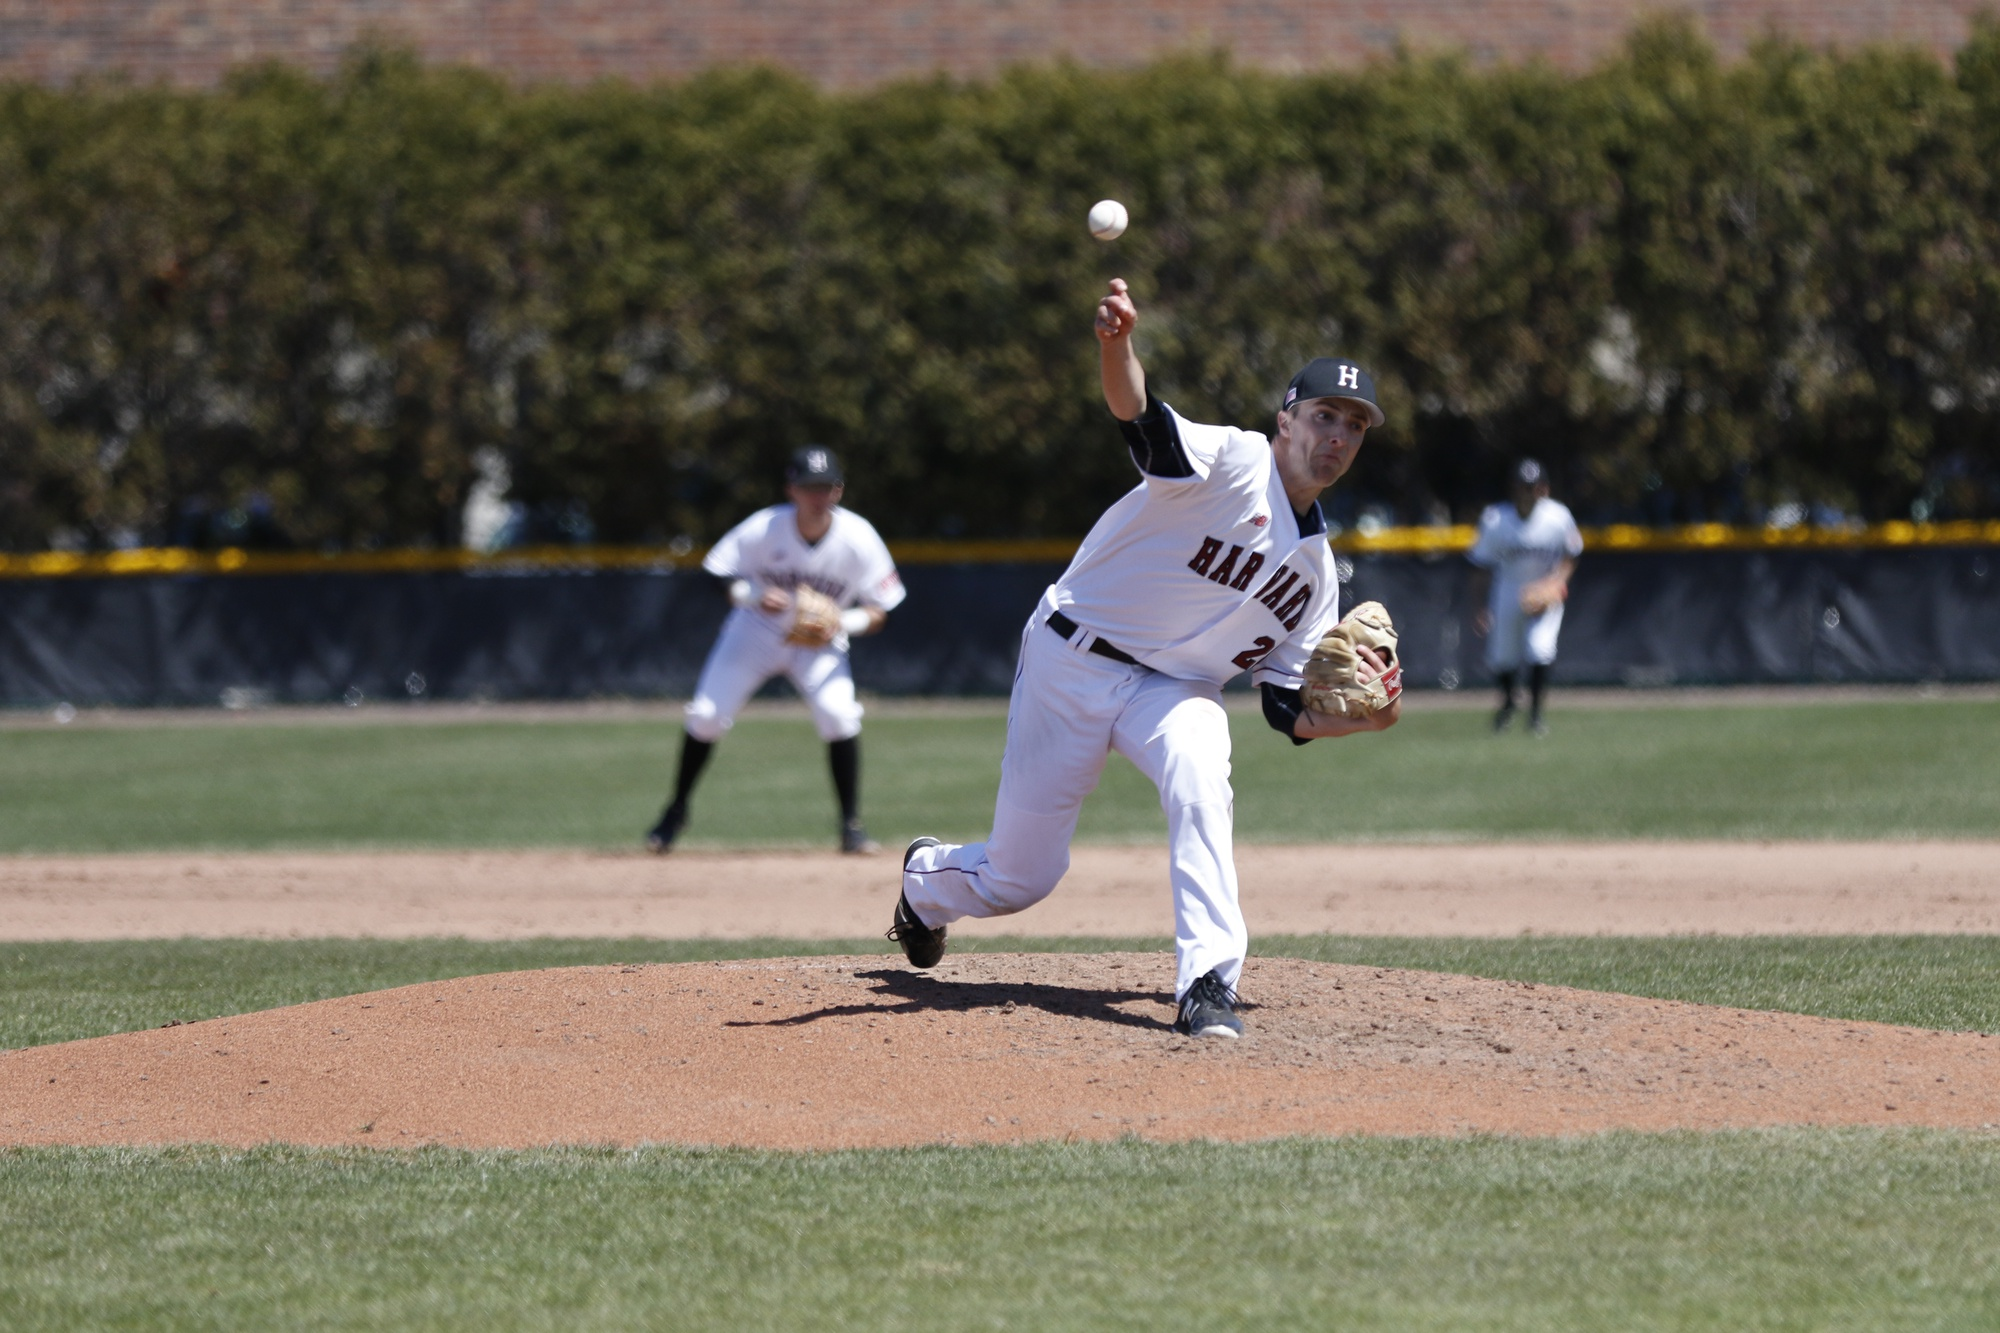 Zavolas fanned 12 batters in his no-hitter on April 13 against Yale, earning his fourth win of the season.